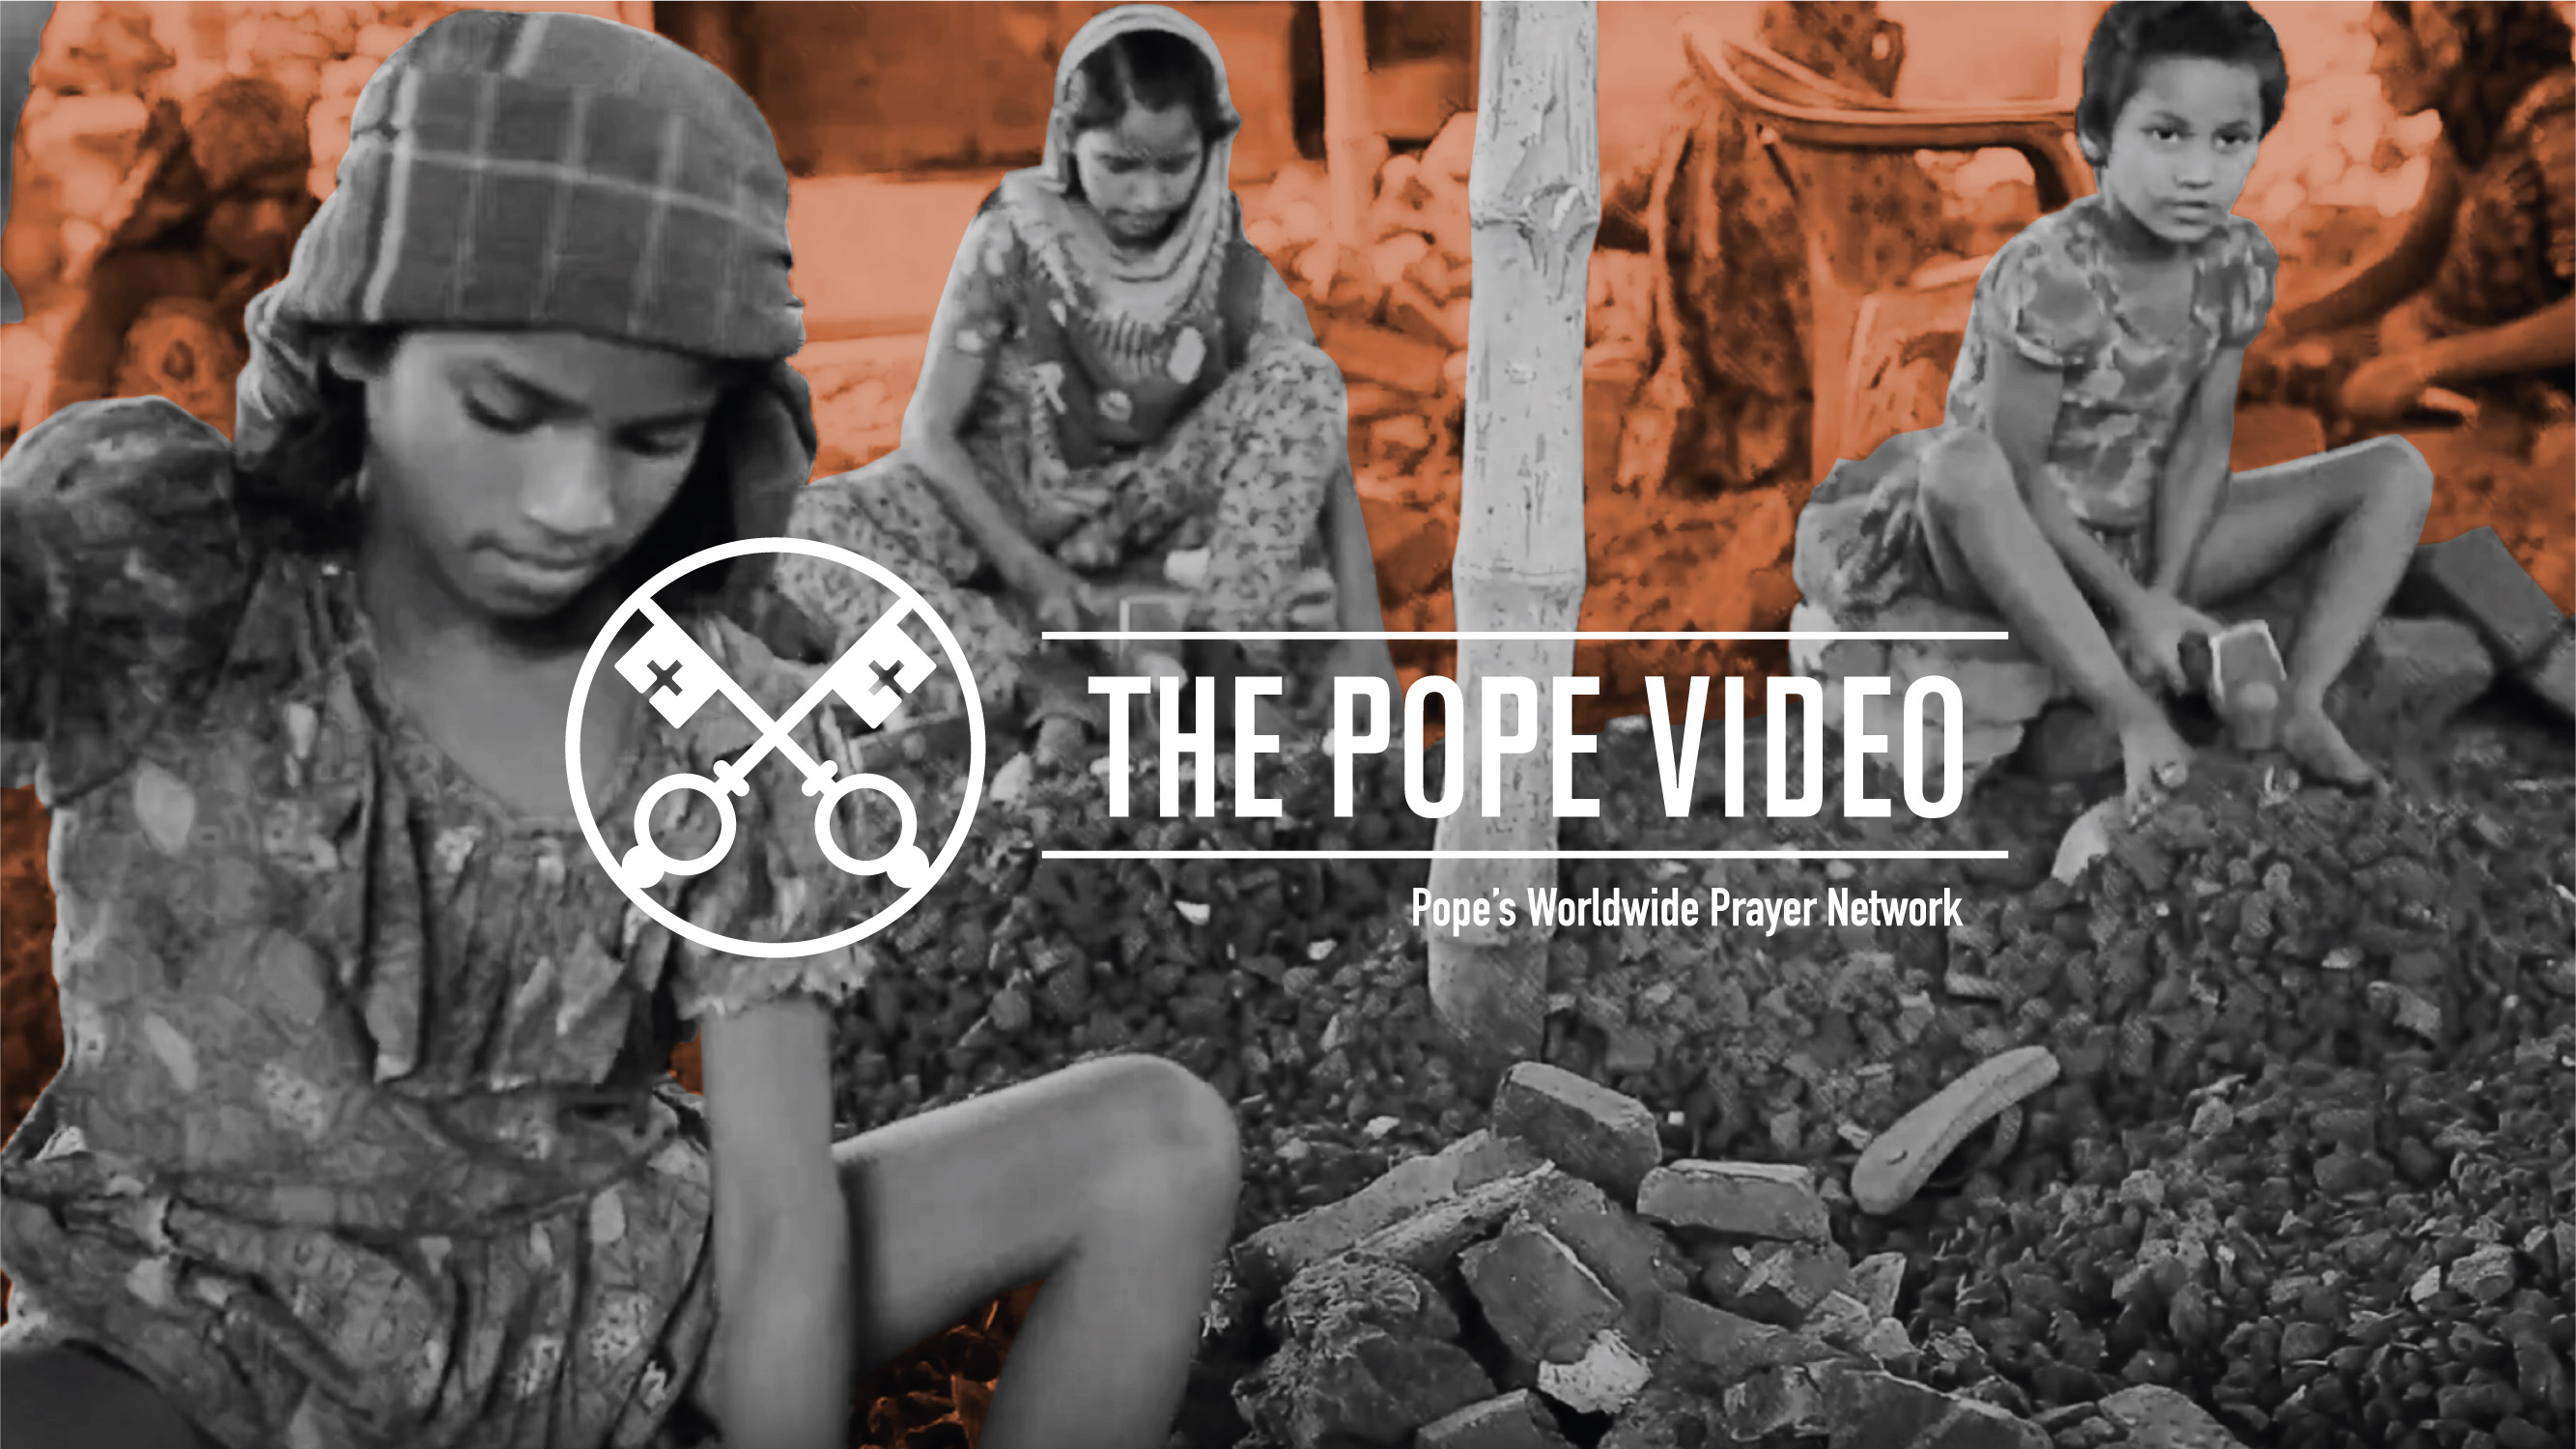 The Pope Video February 2019 (Official Image)